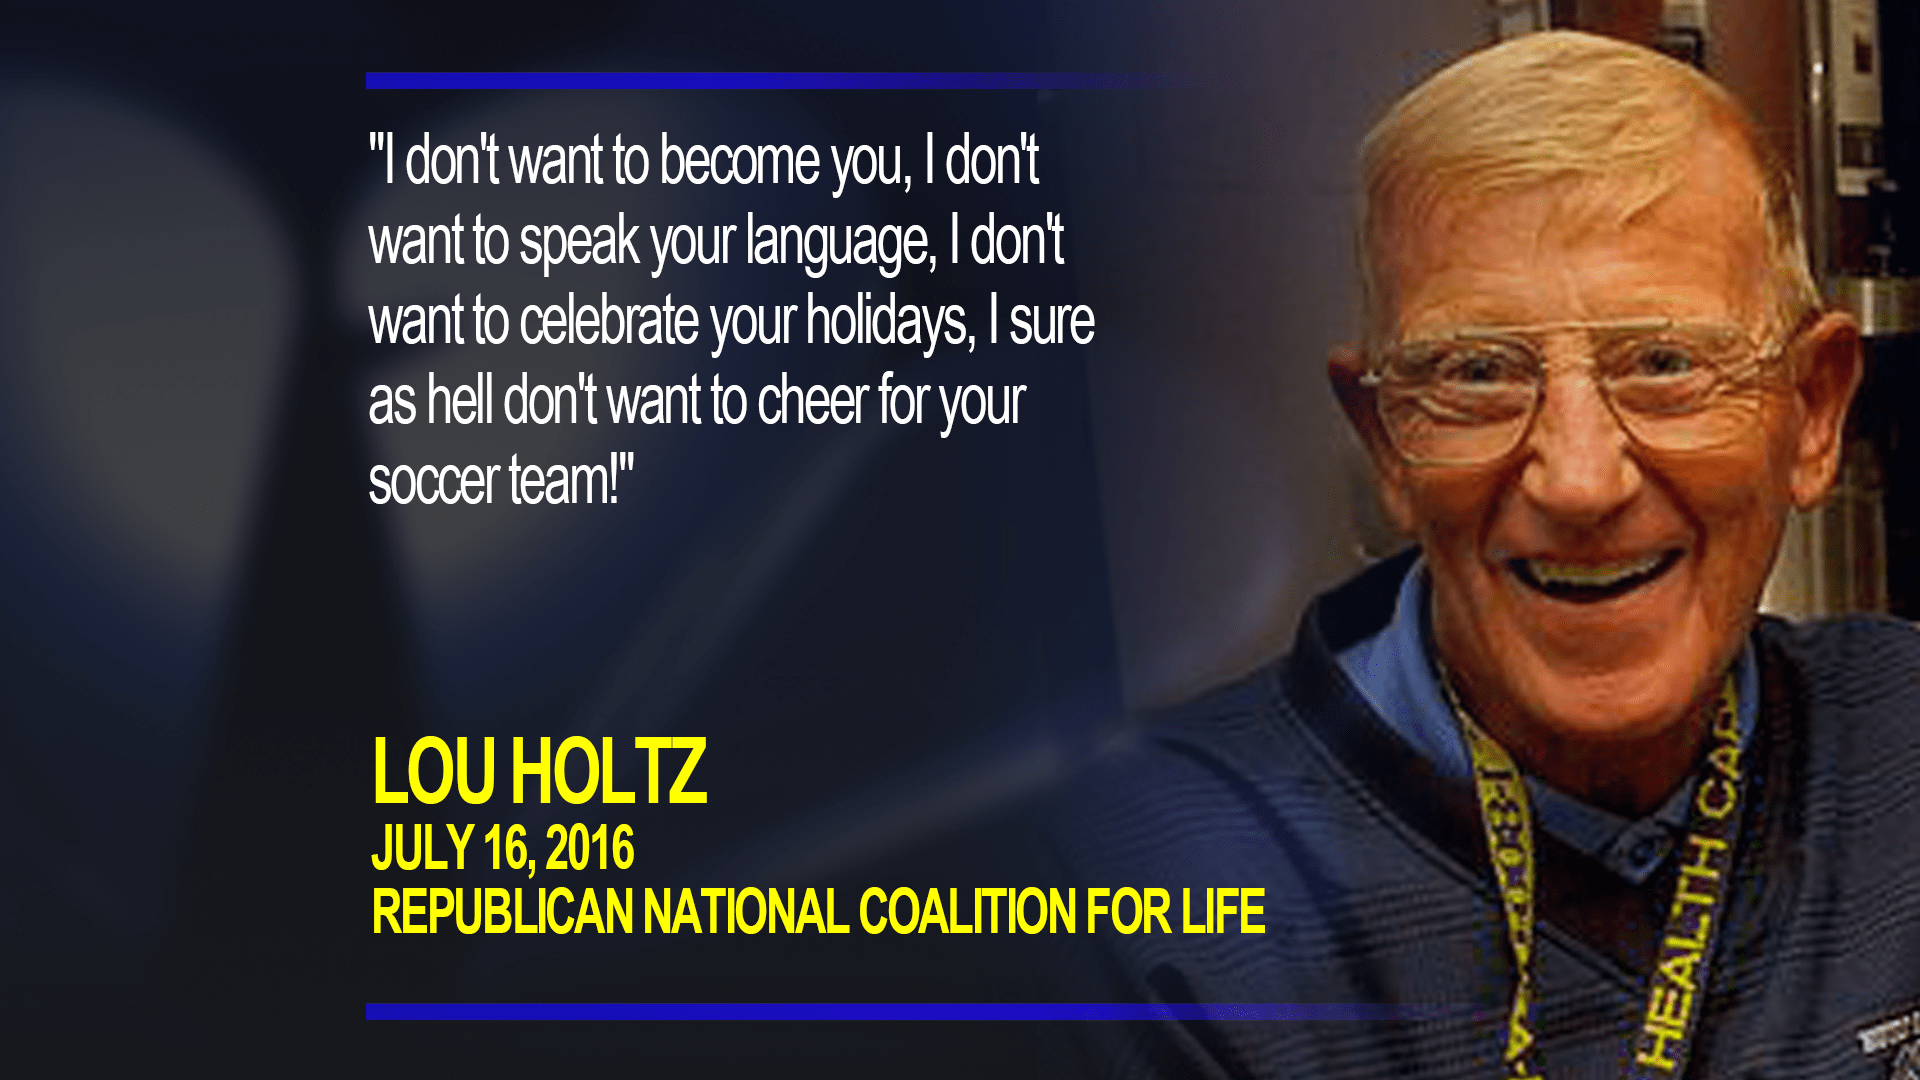 LOU HOLTZ QUOTE 081816_1472088655188.png